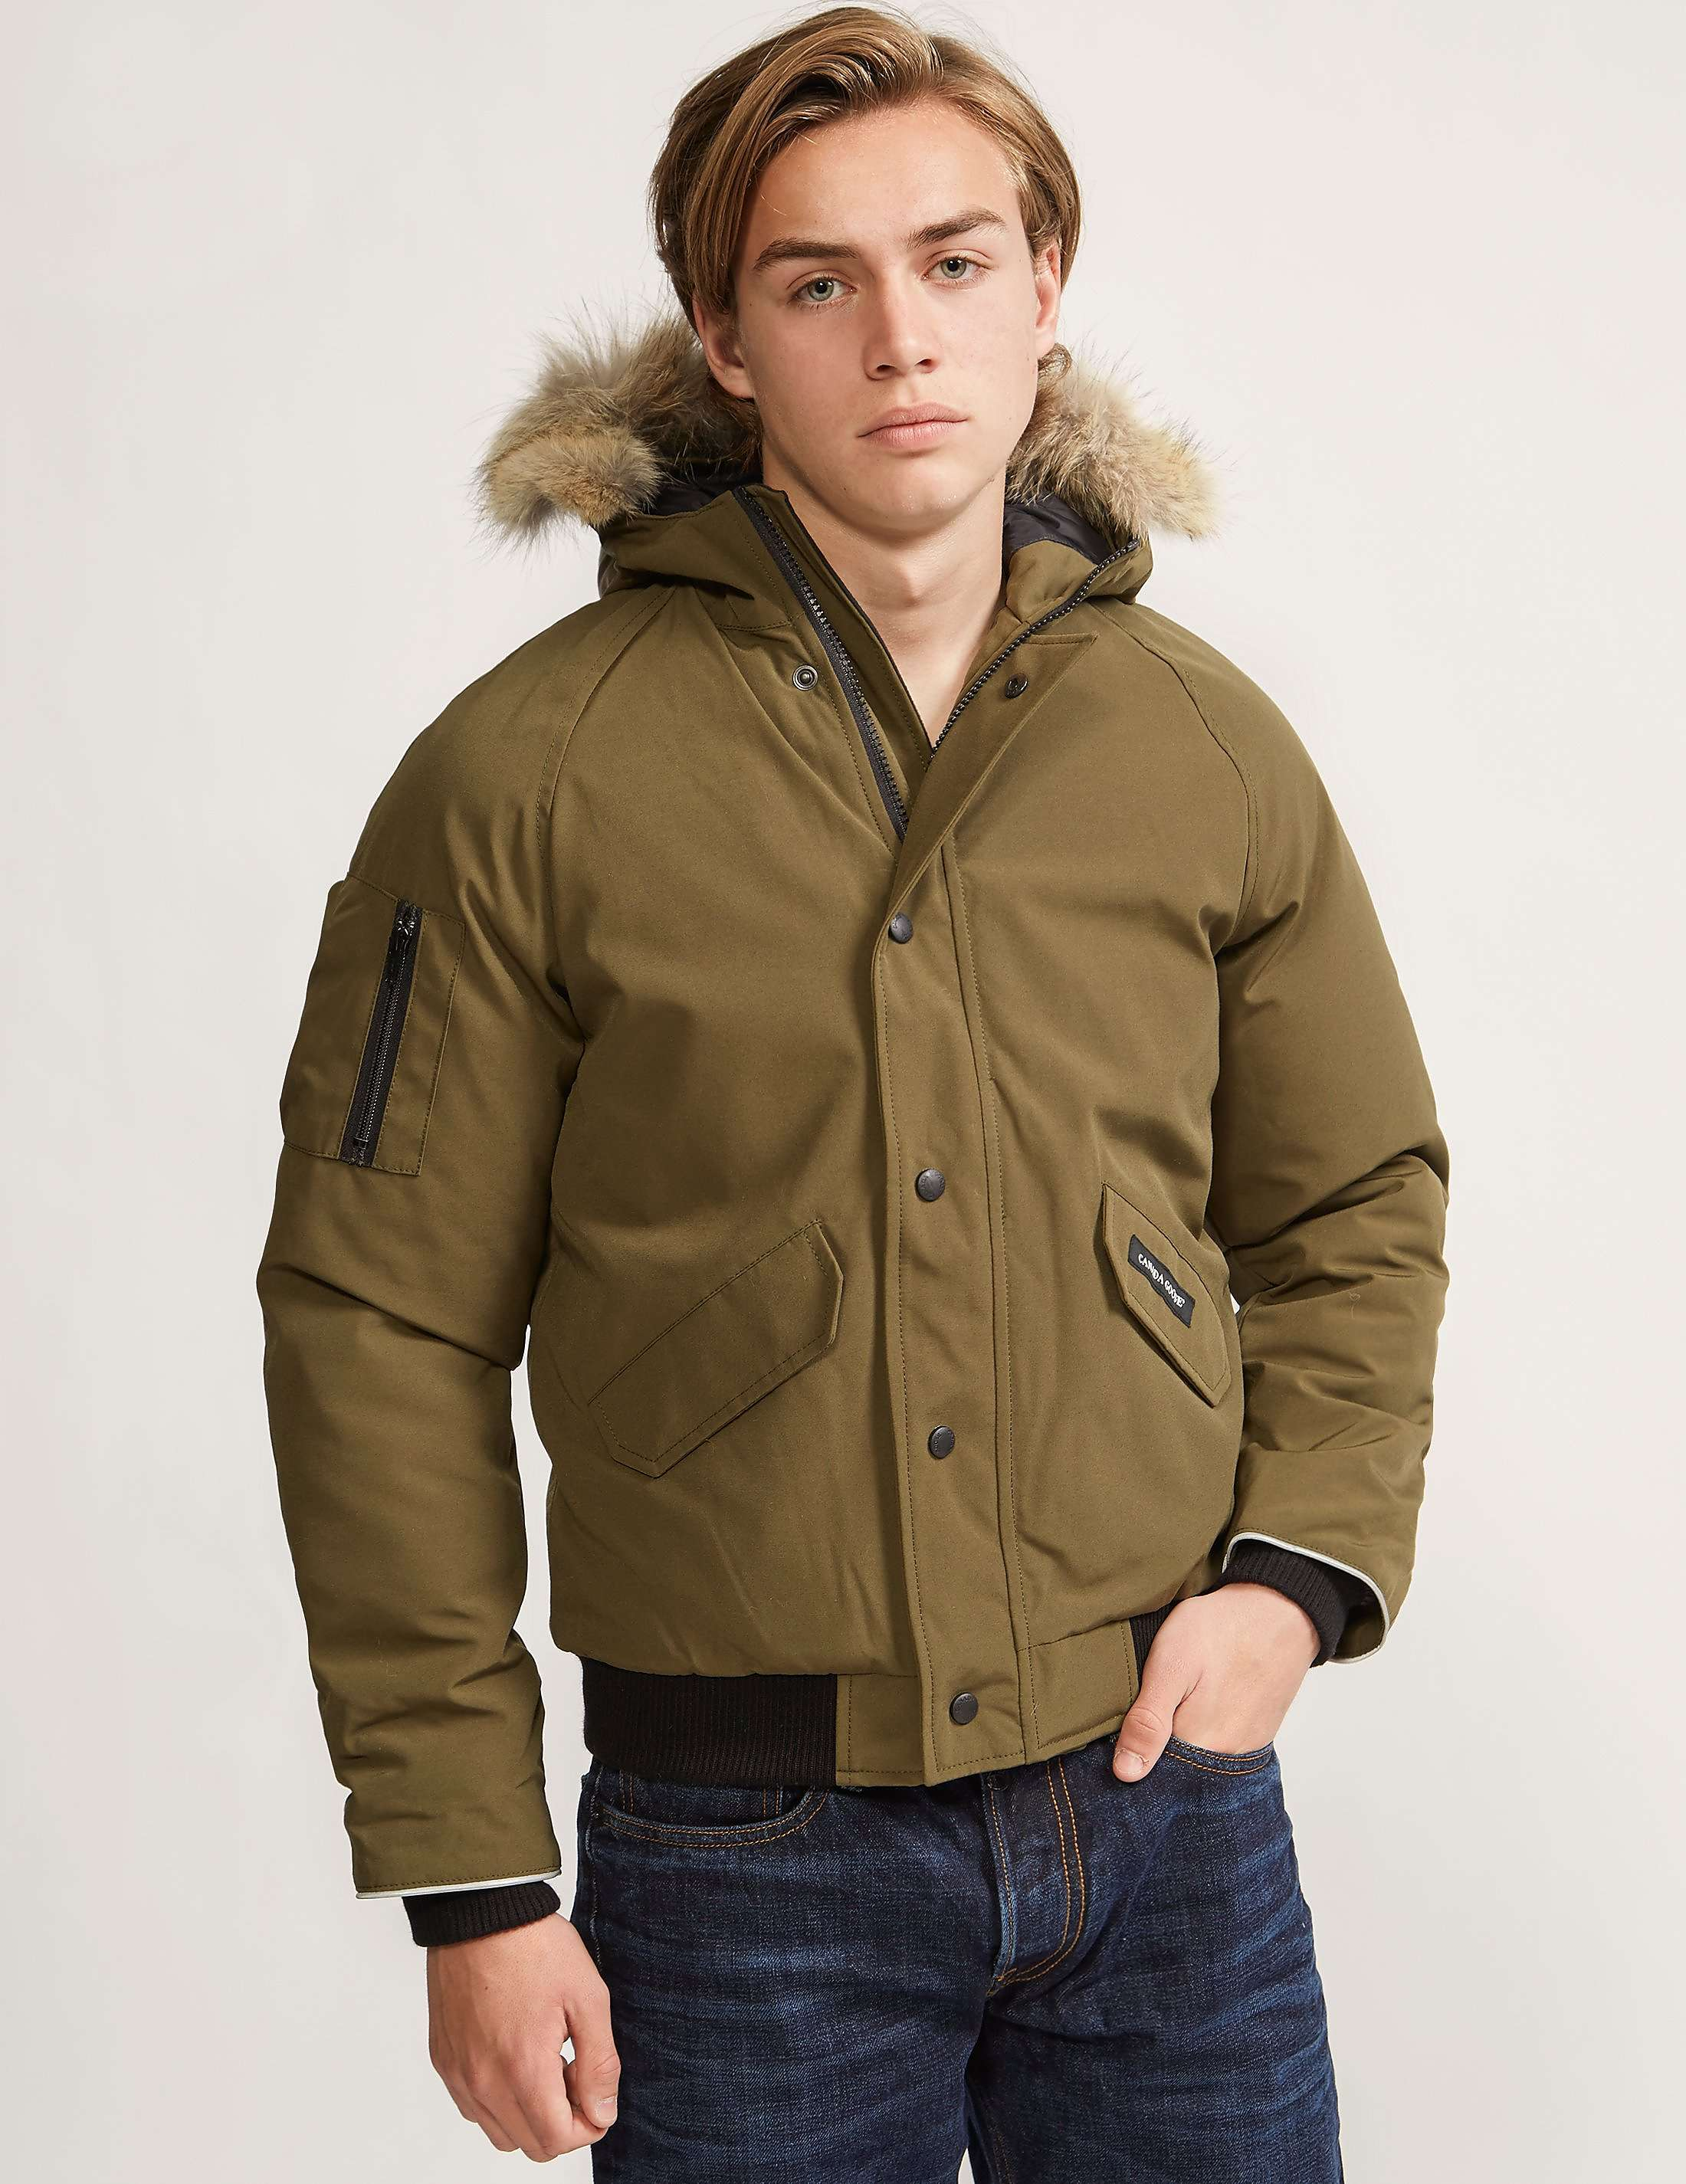 Canada Goose' RUNDLE BOMBER (14-16 years YOUTH)